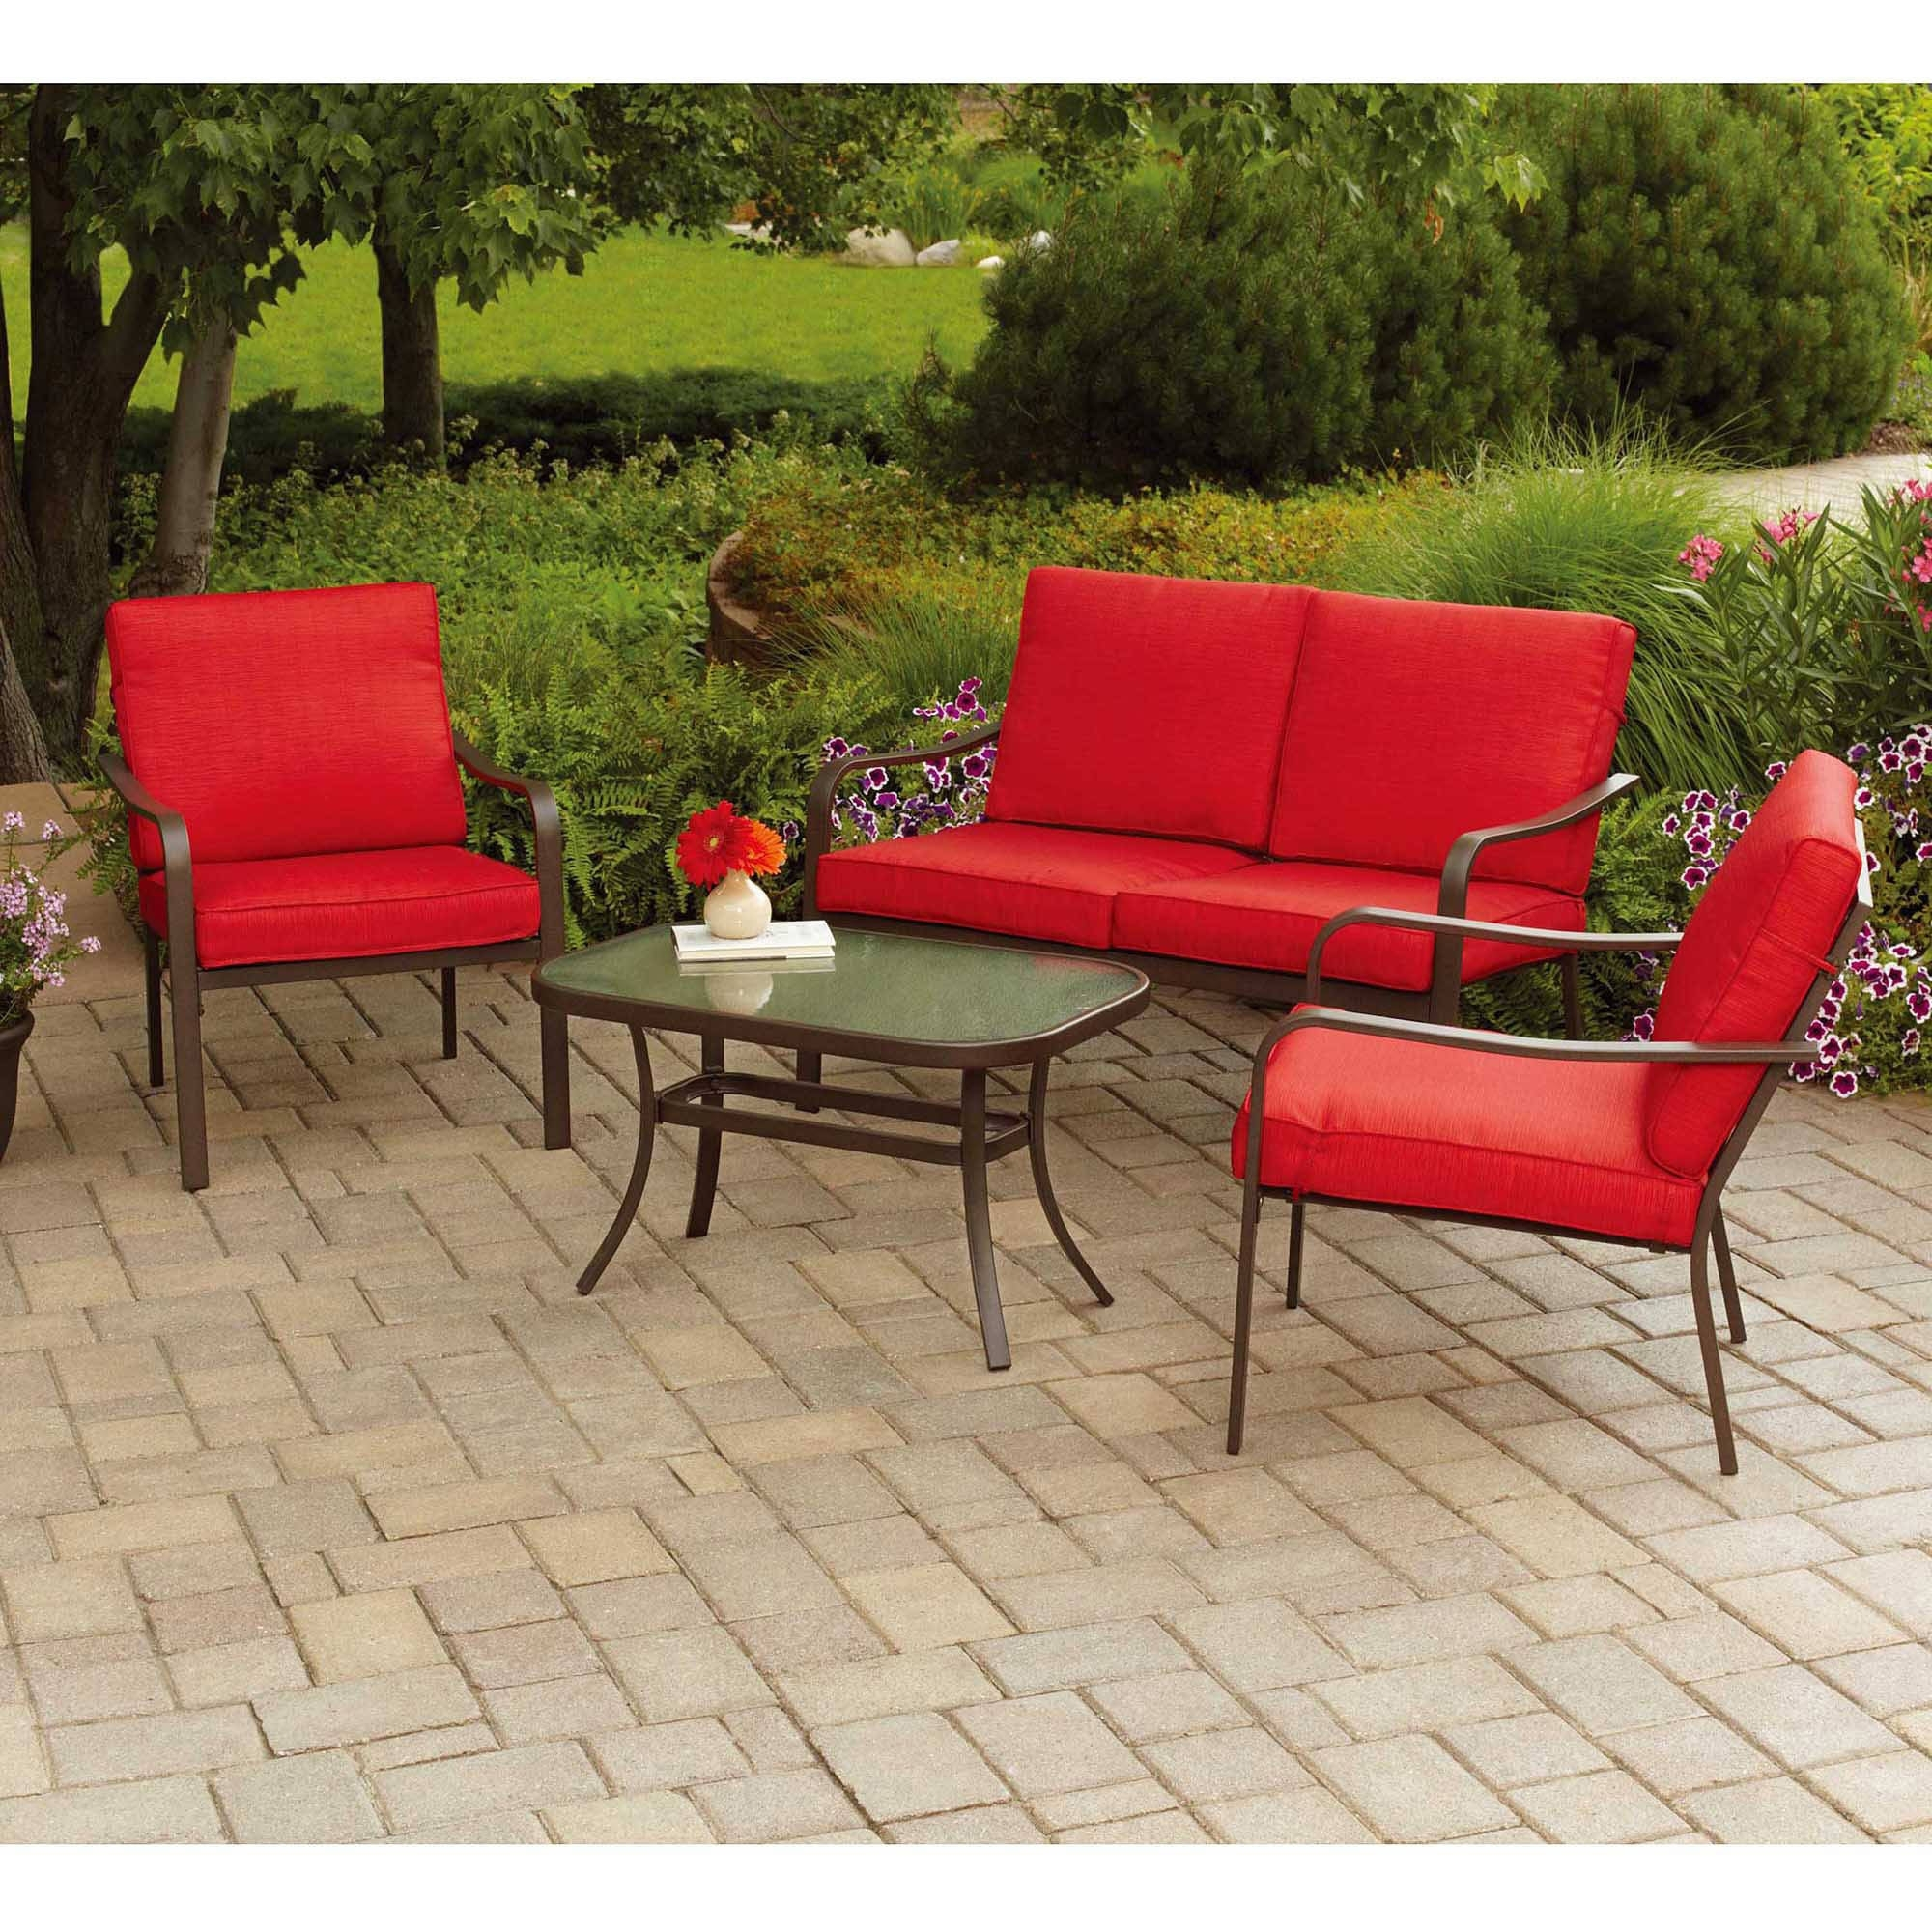 Most Up To Date Patio Conversation Sets At Walmart Within Mainstays Stanton Cushioned 4 Piece Patio Conversation Set, Red (View 8 of 15)